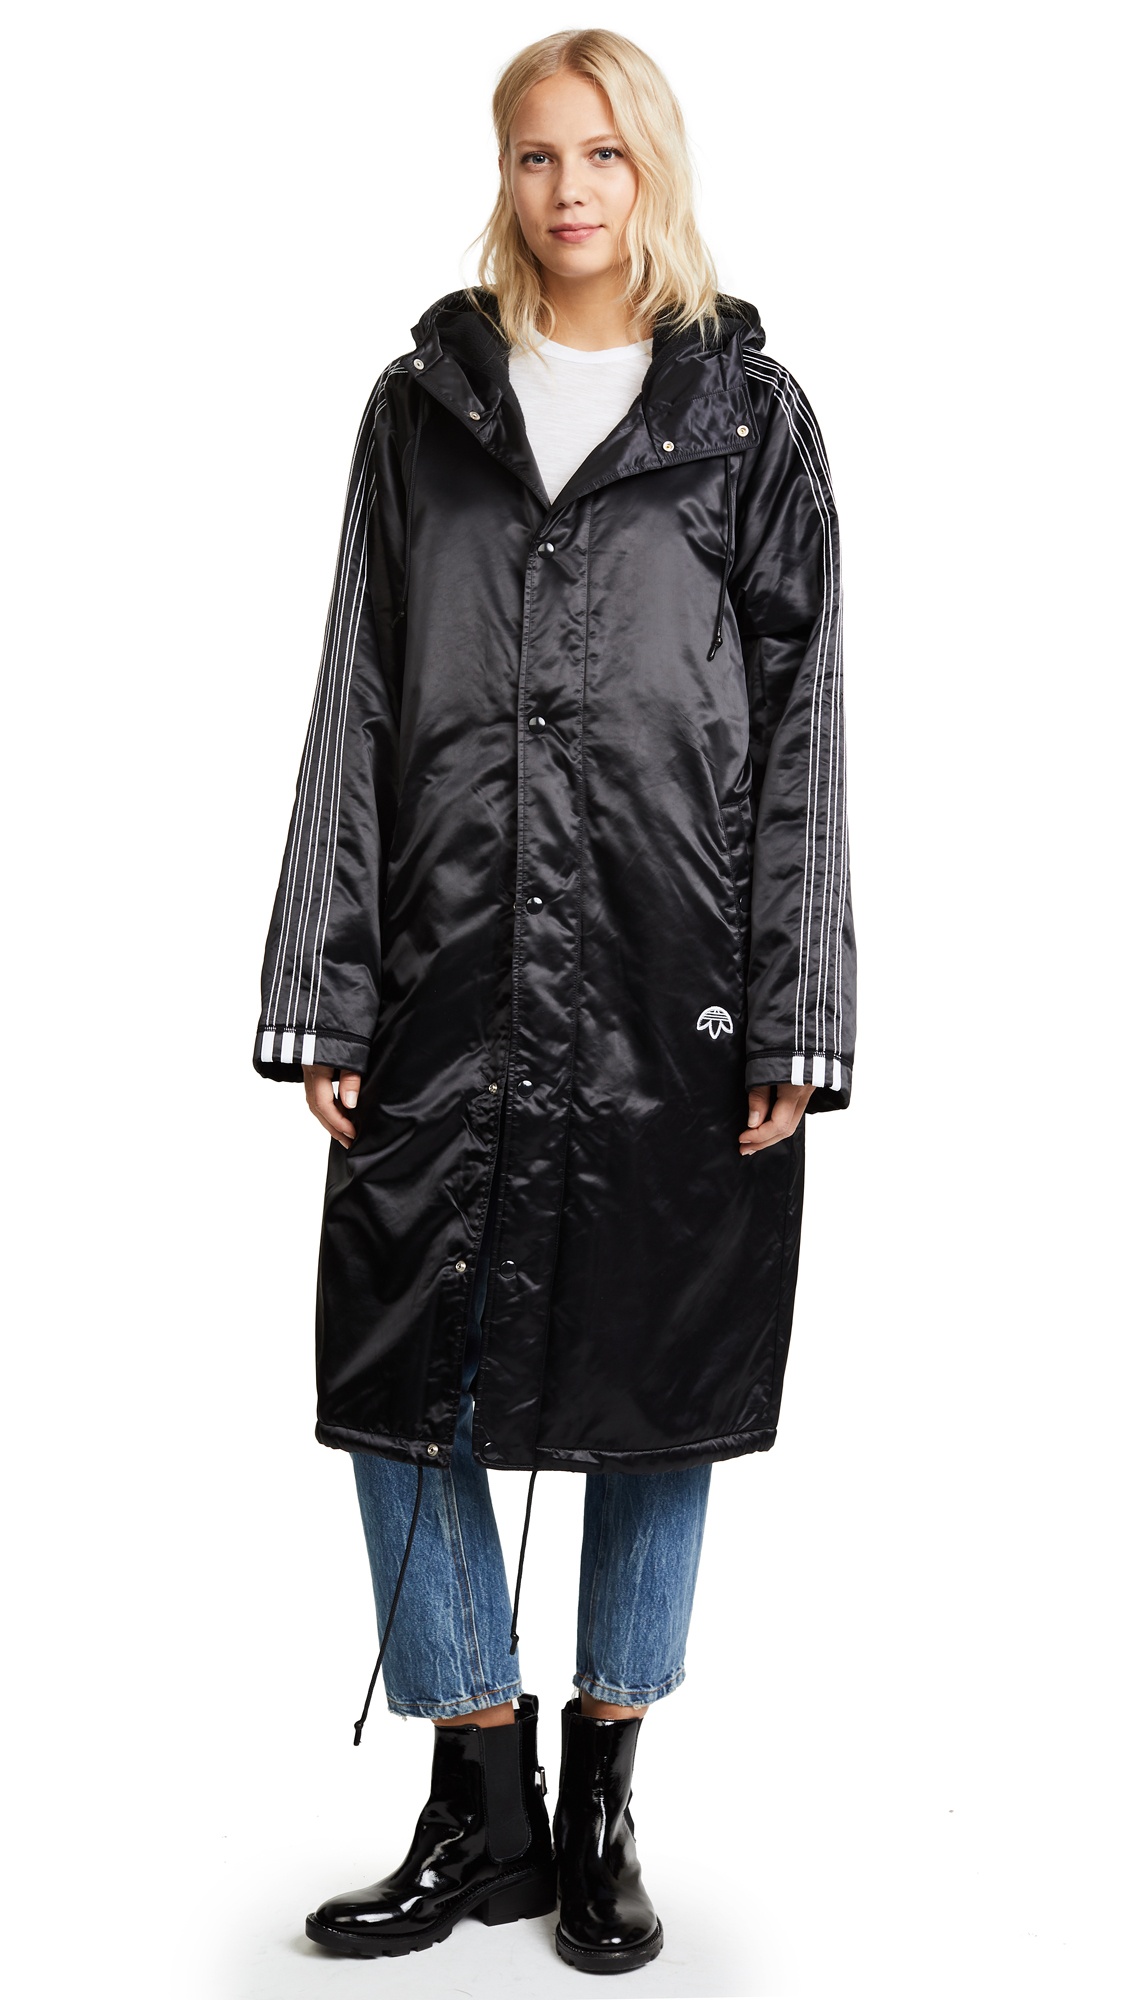 bd2261560eb5 adidas Originals by Alexander Wang AW Stadium Jacket